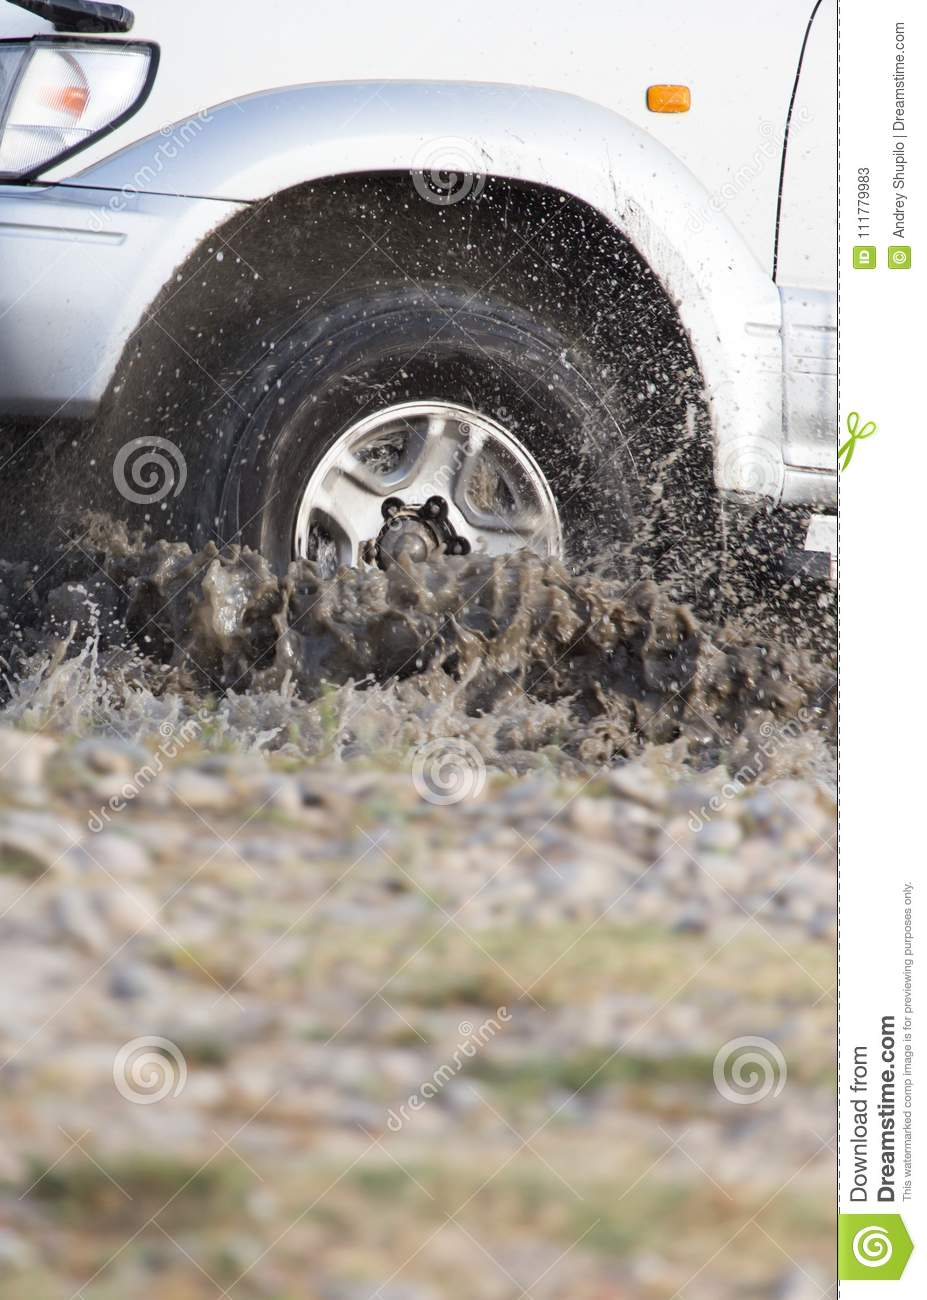 Car wheel in a spray of dirt and water